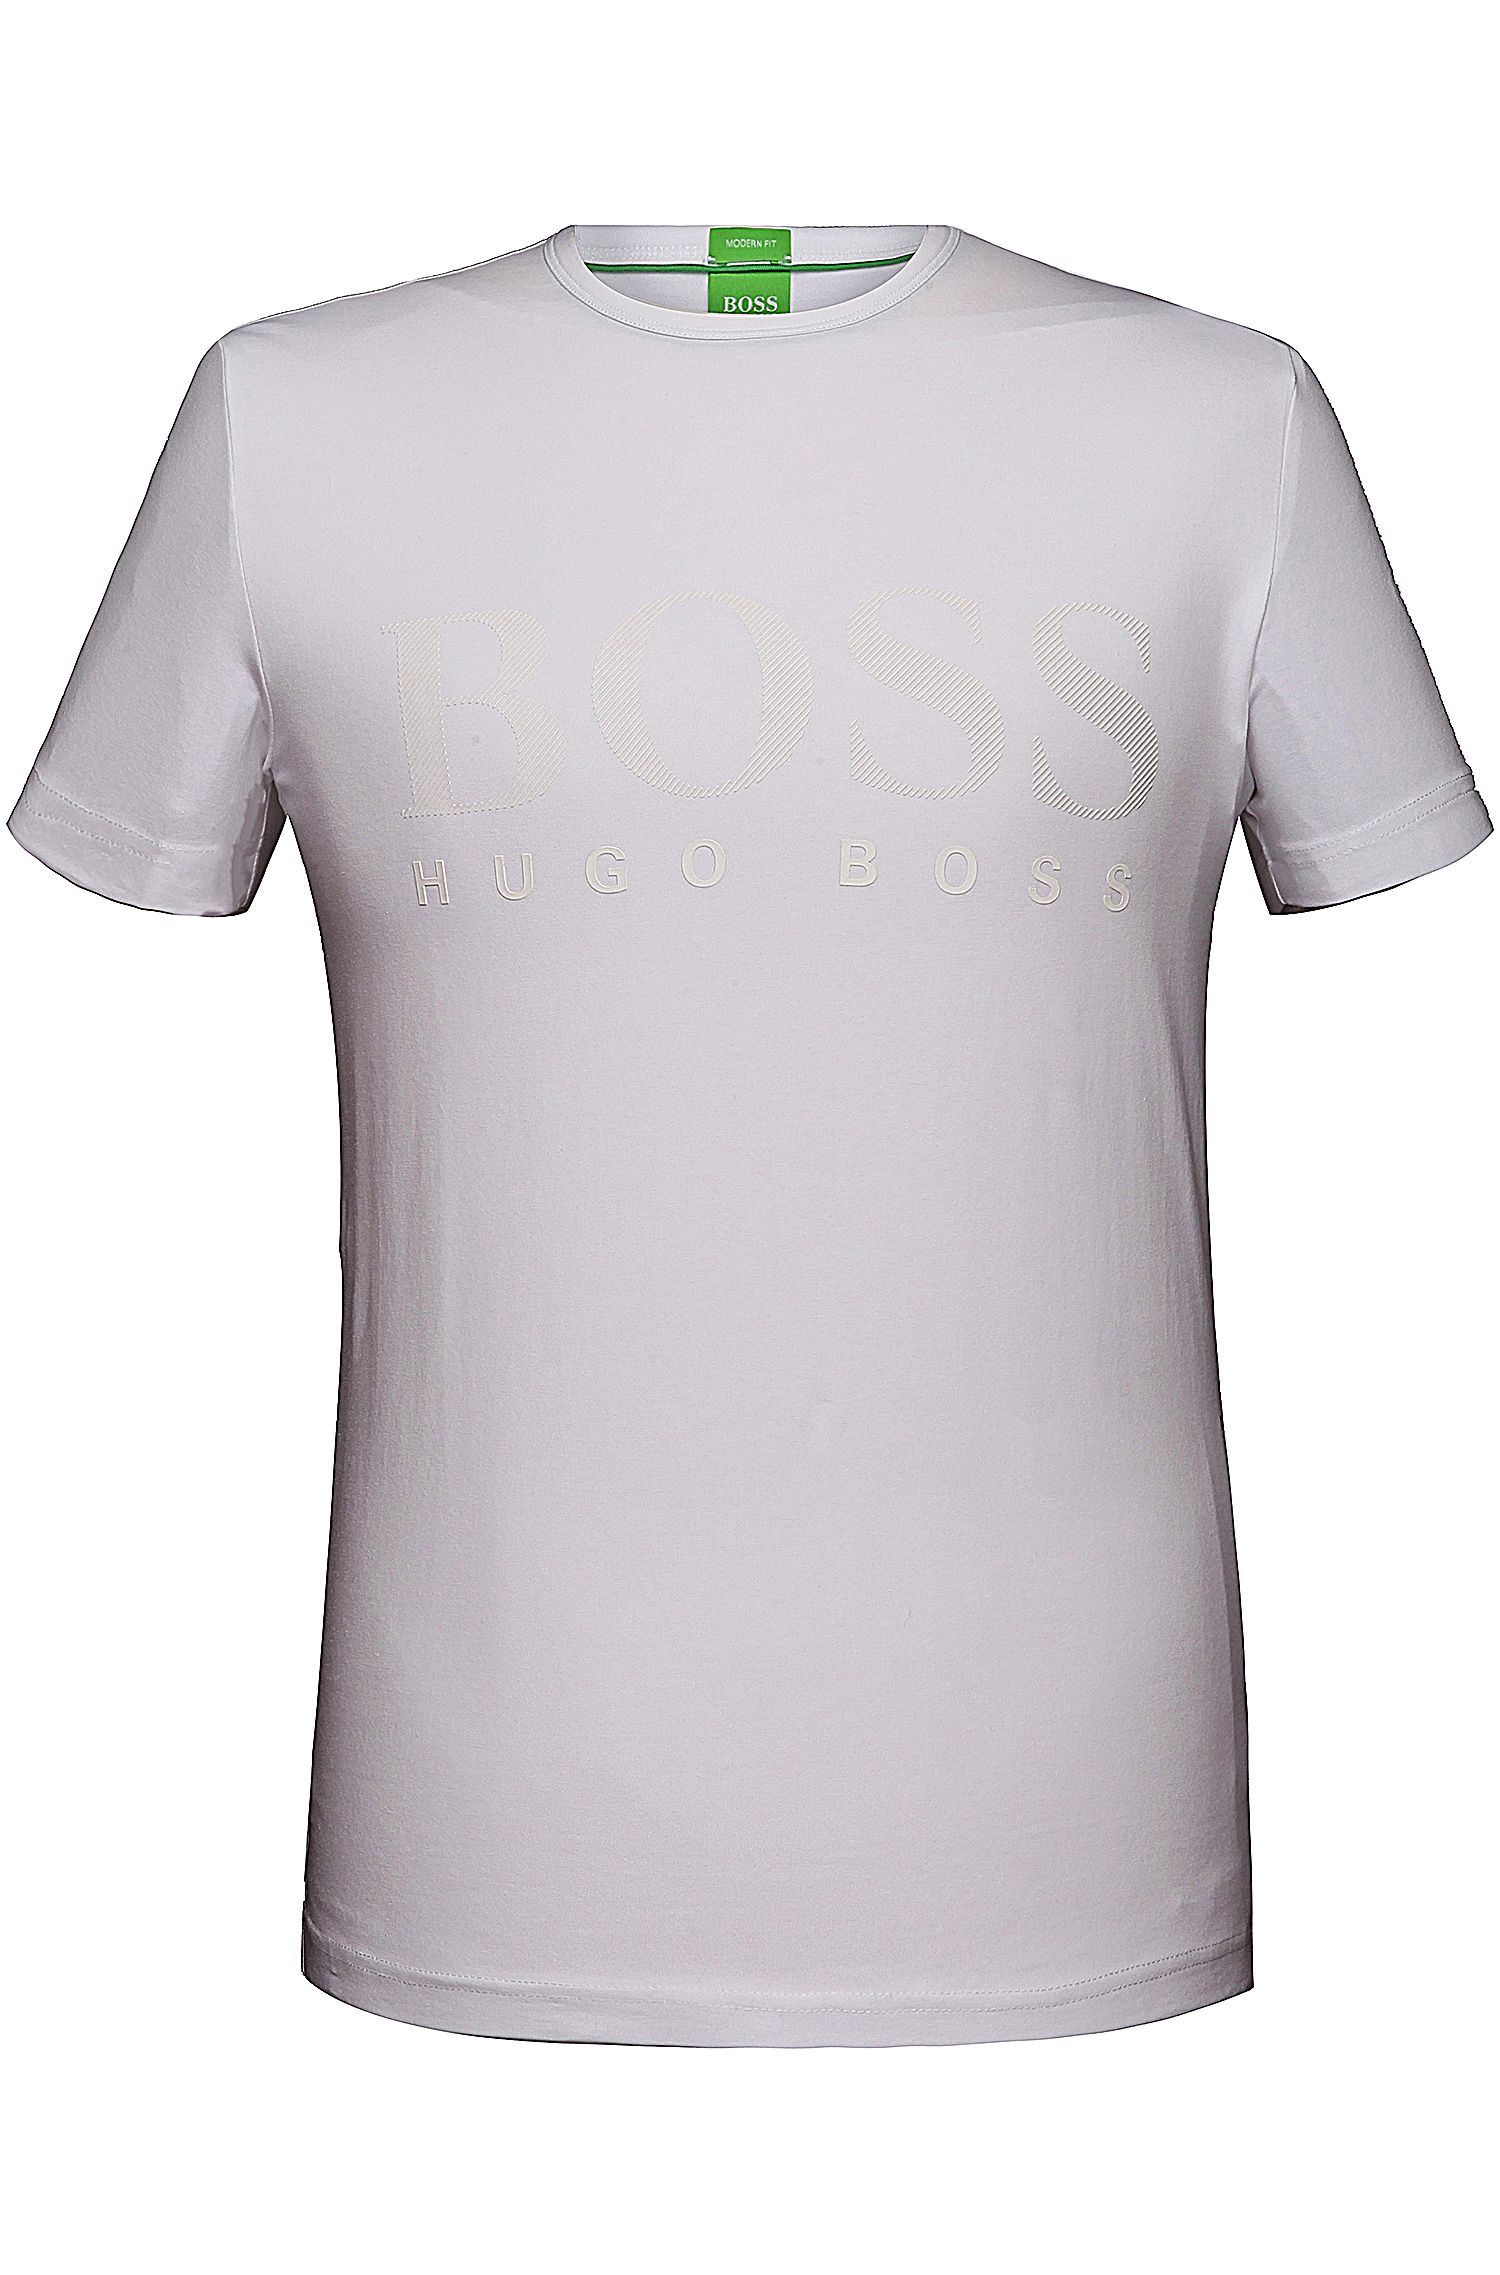 T-shirt 'Tee US' in cotton blend with elastane